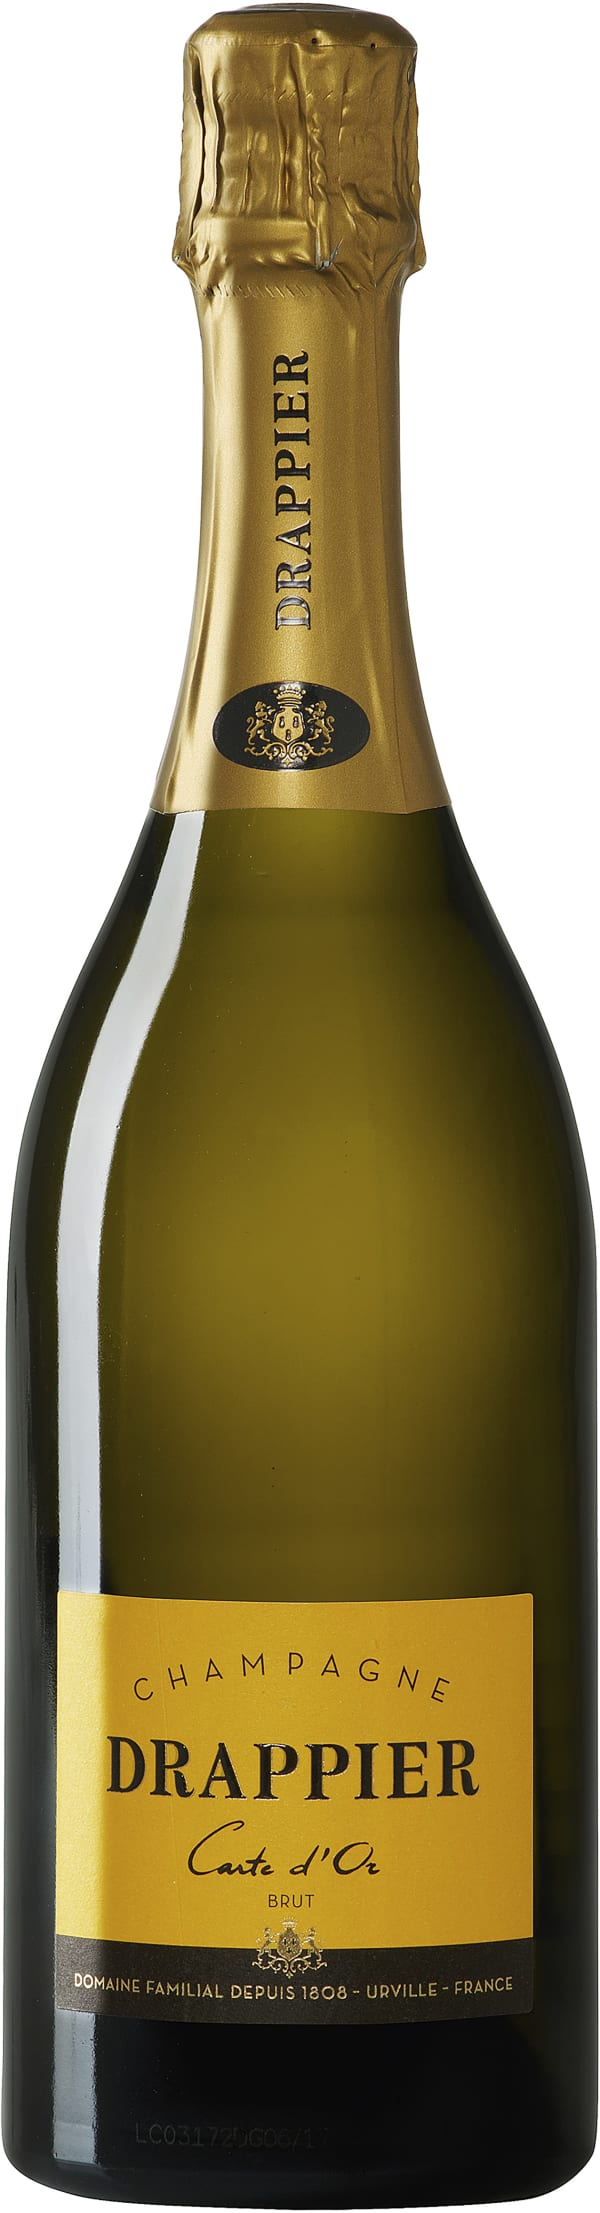 Drappier Carte d'Or Champagne Brut